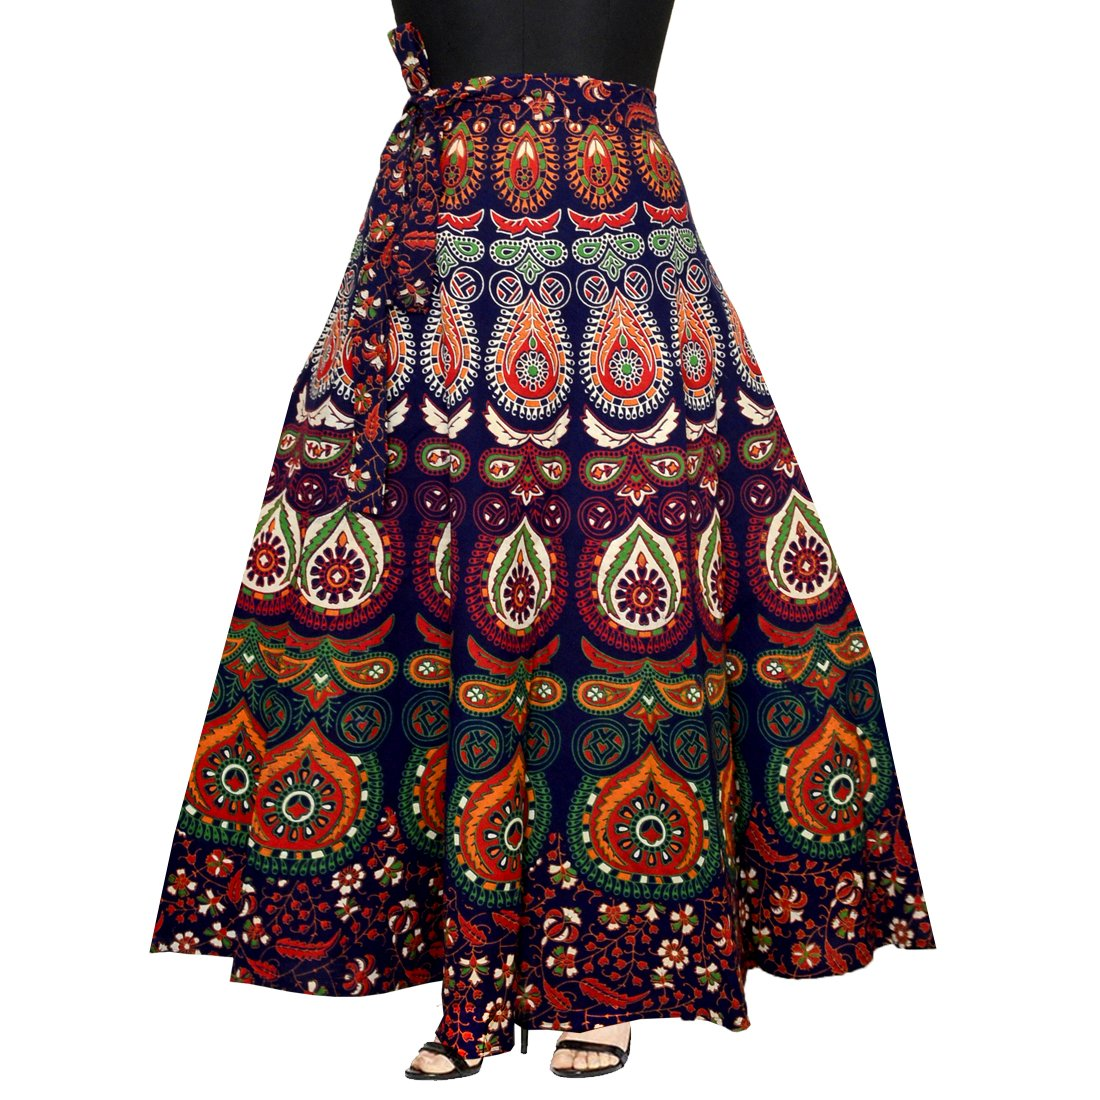 Mudrika Women's Pure Cotton Wrap Around Skirt with Elegant Printed (SK_5299, Multicolour, Free Size)